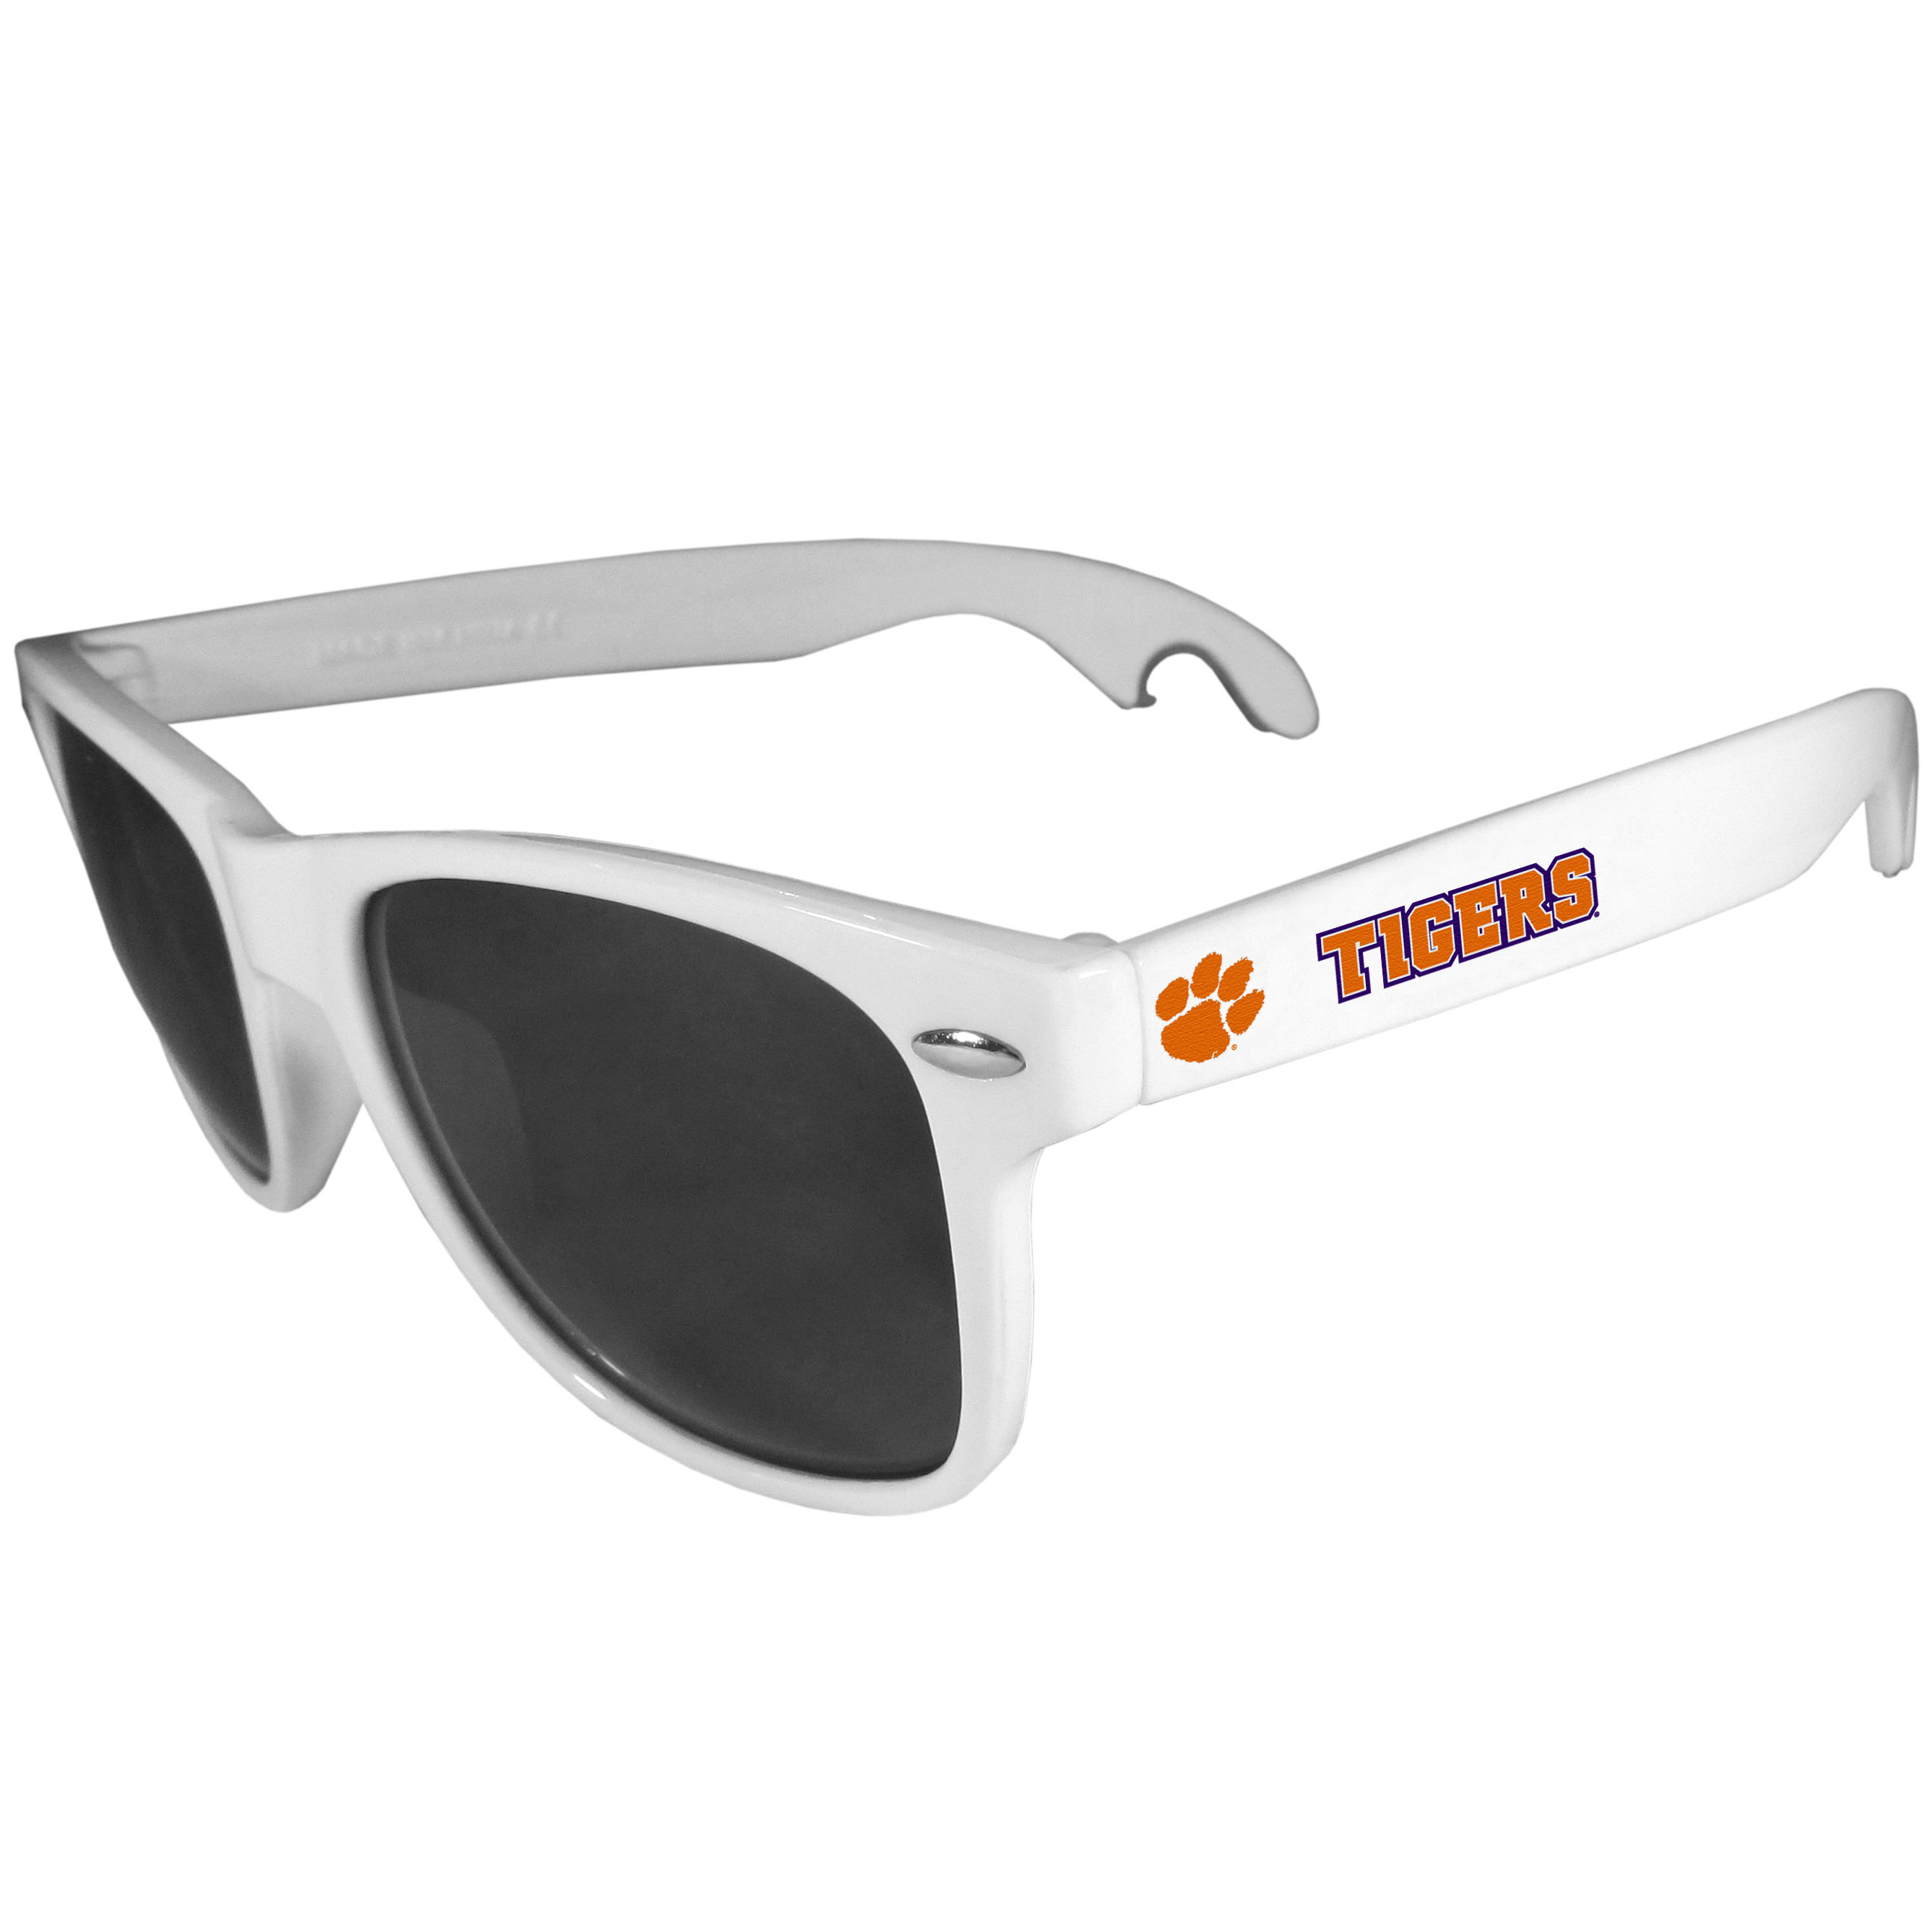 Clemson Tigers Beachfarer Bottle Opener Sunglasses, White - Seriously, these sunglasses open bottles! Keep the party going with these amazing Clemson Tigers bottle opener sunglasses. The stylish retro frames feature team designs on the arms and functional bottle openers on the end of the arms. Whether you are at the beach or having a backyard BBQ on game day, these shades will keep your eyes protected with 100% UVA/UVB protection and keep you hydrated with the handy bottle opener arms.